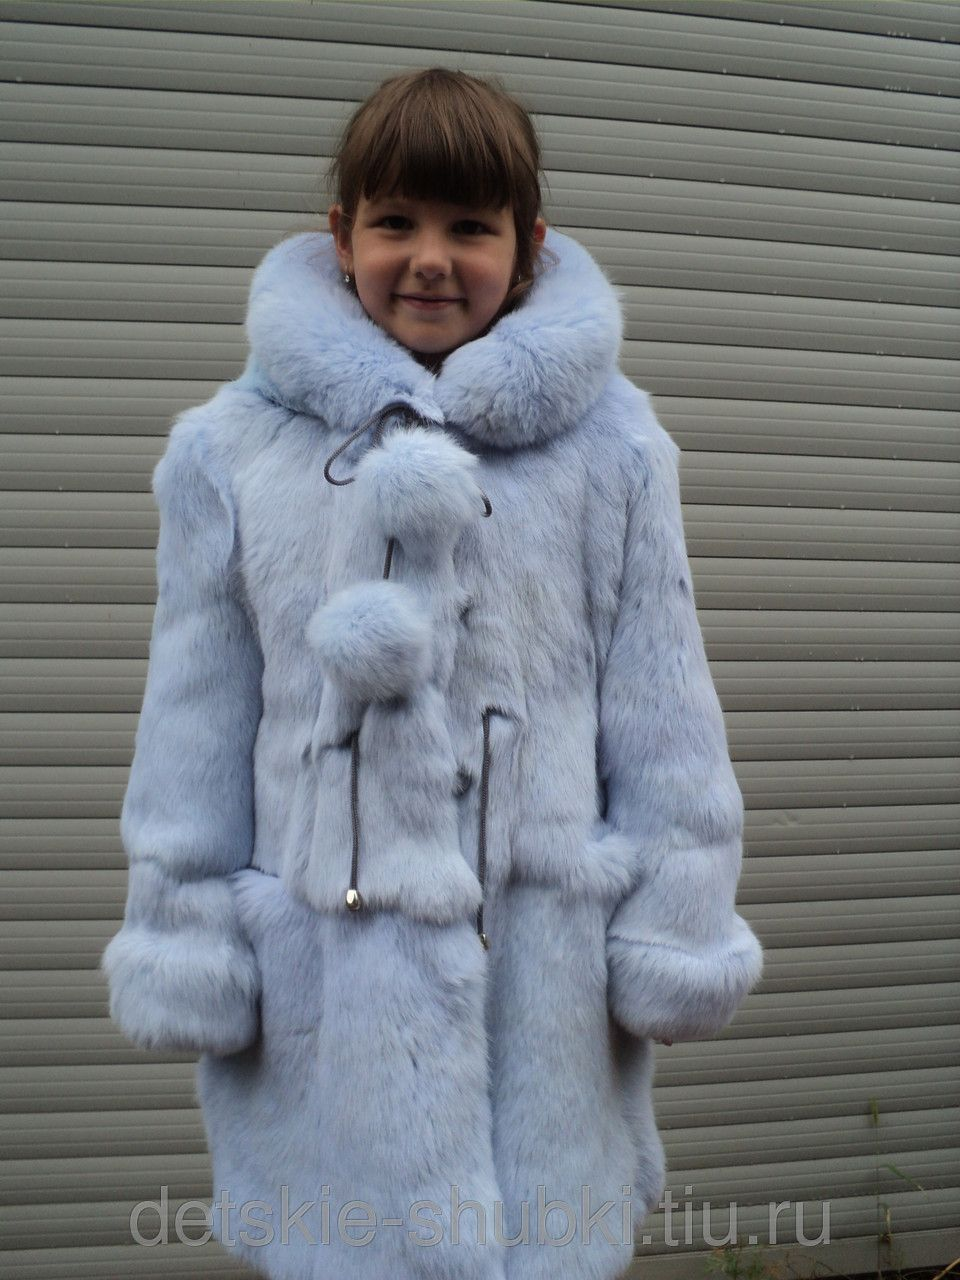 6c189efdd This is pretty much the perfect fur coat for little girls. Rabbit ...